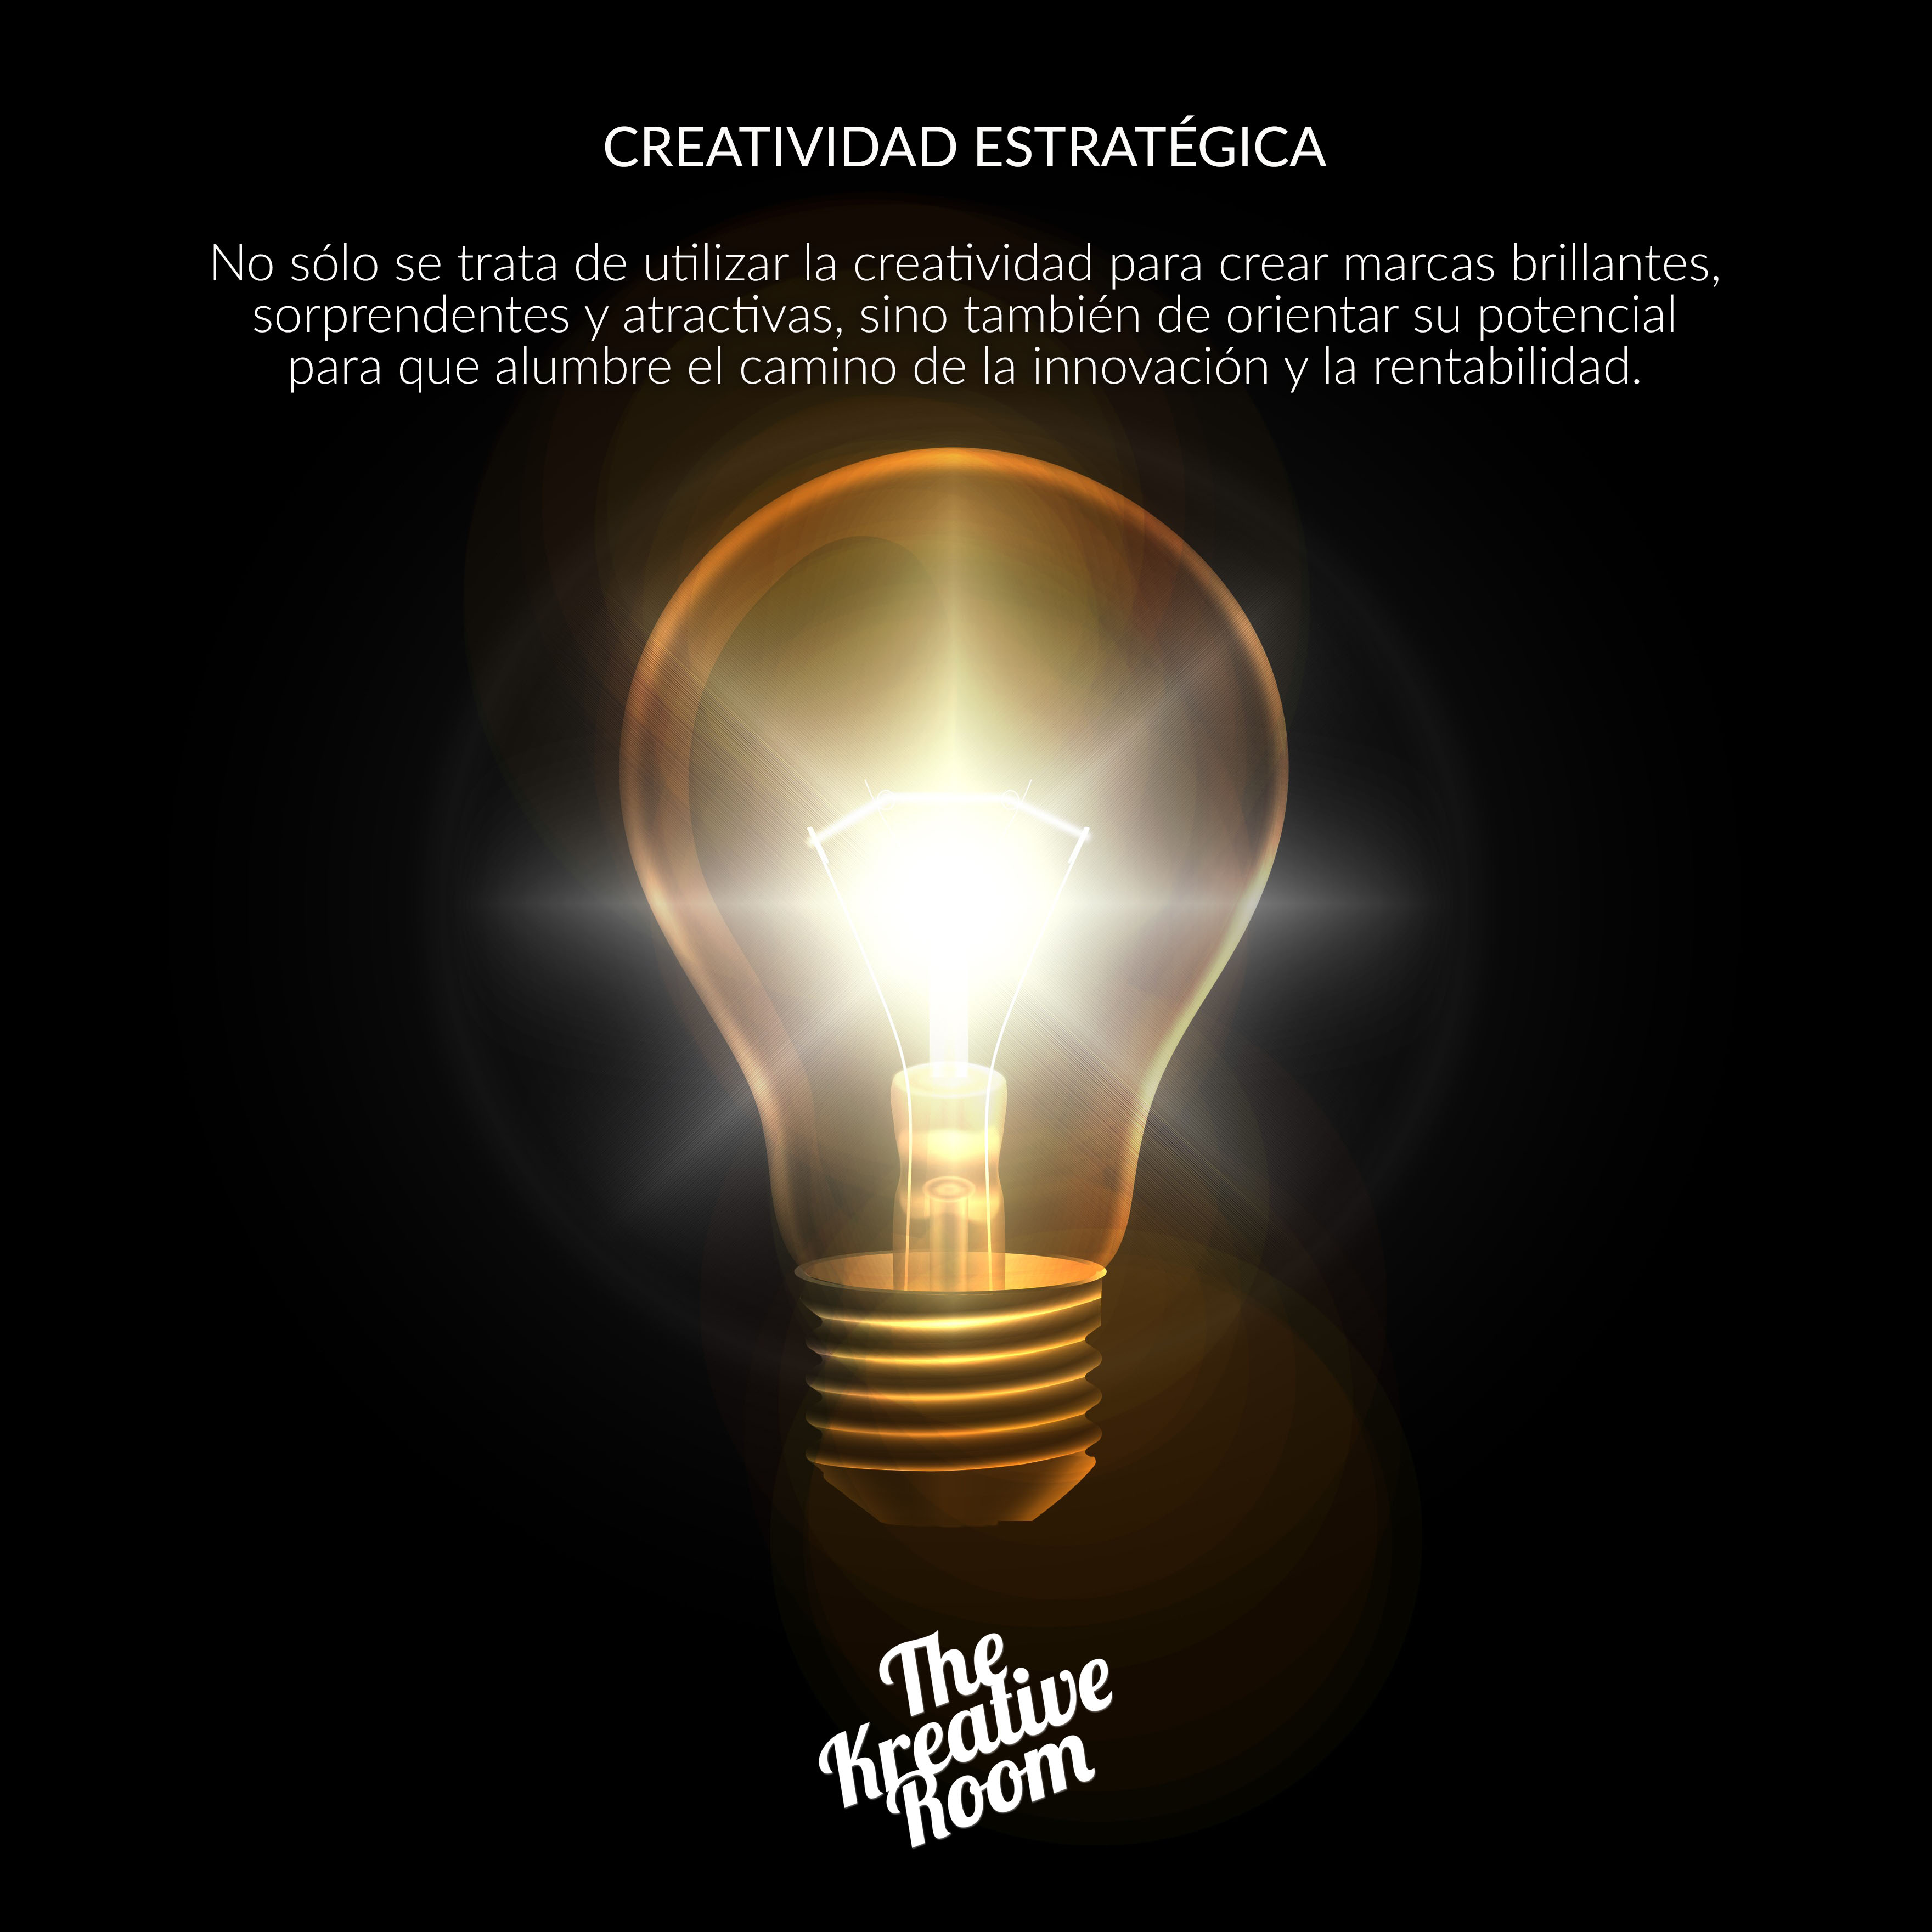 CREATIVIDAD ESTRATÉGICA-THE KREATIVE ROOM